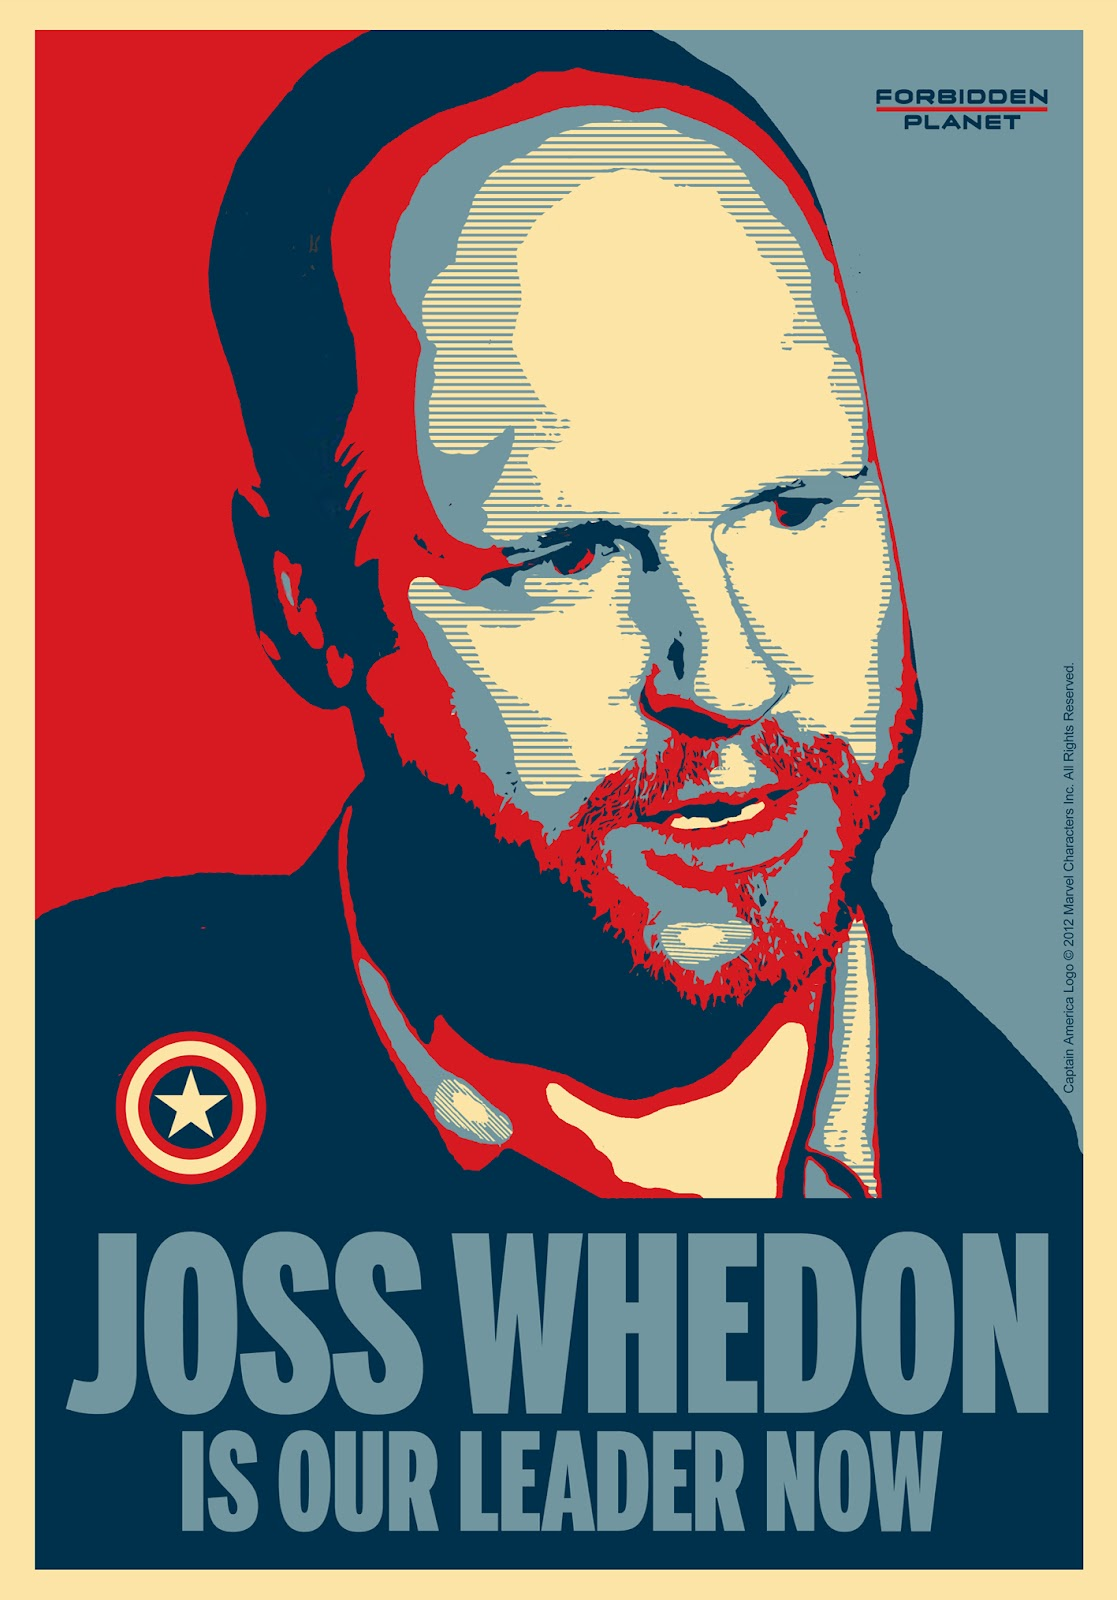 http://4.bp.blogspot.com/-hr1iplo0JwI/UCJht25YaOI/AAAAAAAAEOY/TnjmMSUTD0g/s1600/Joss-Whedon-is-our-leader-now.jpg